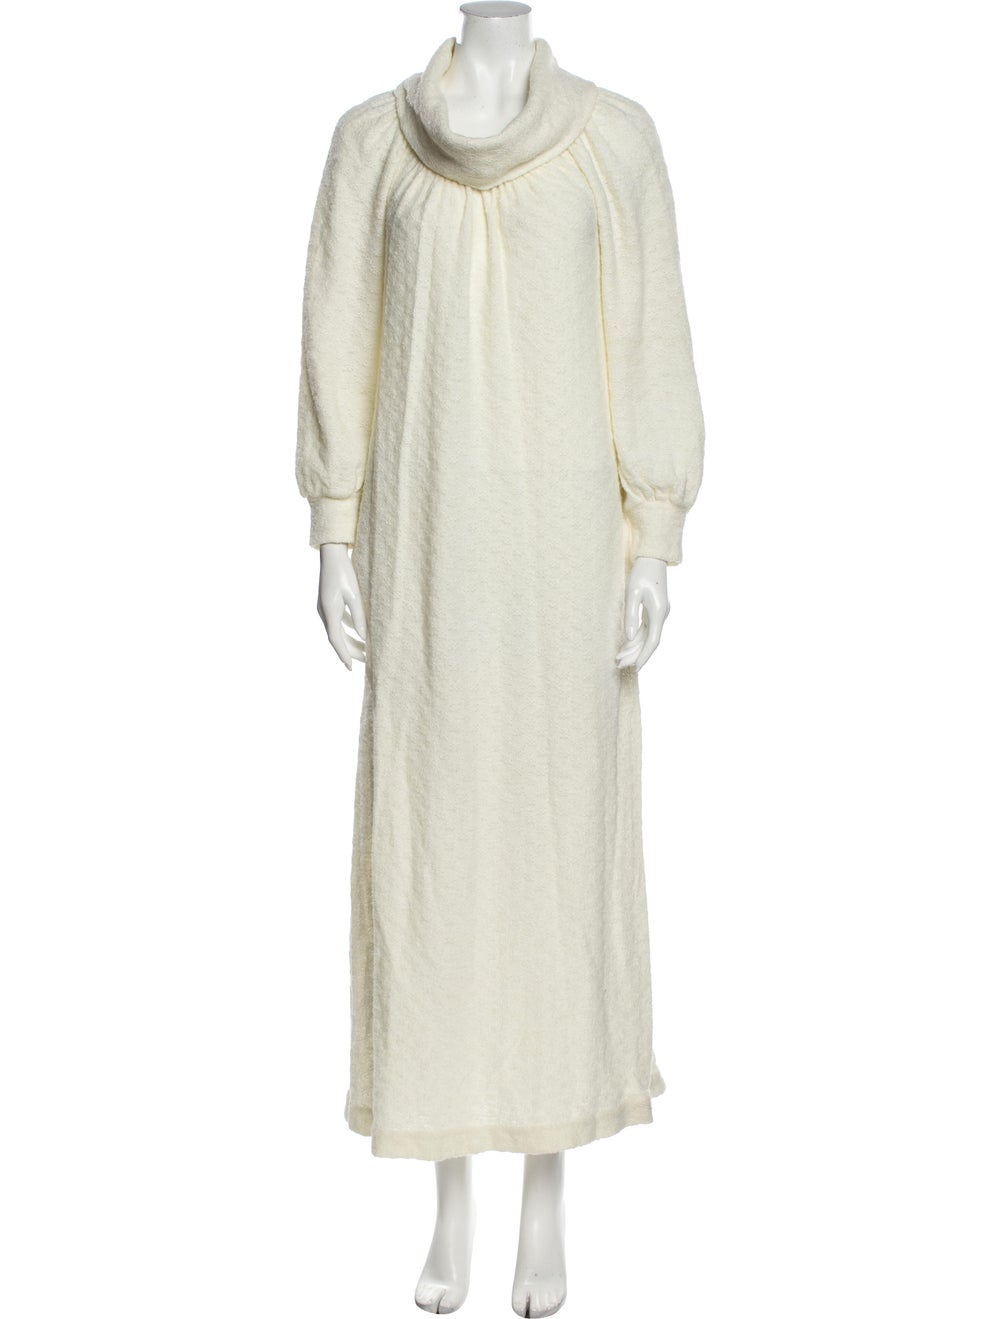 Christian Dior Vintage Nightgown - image 1